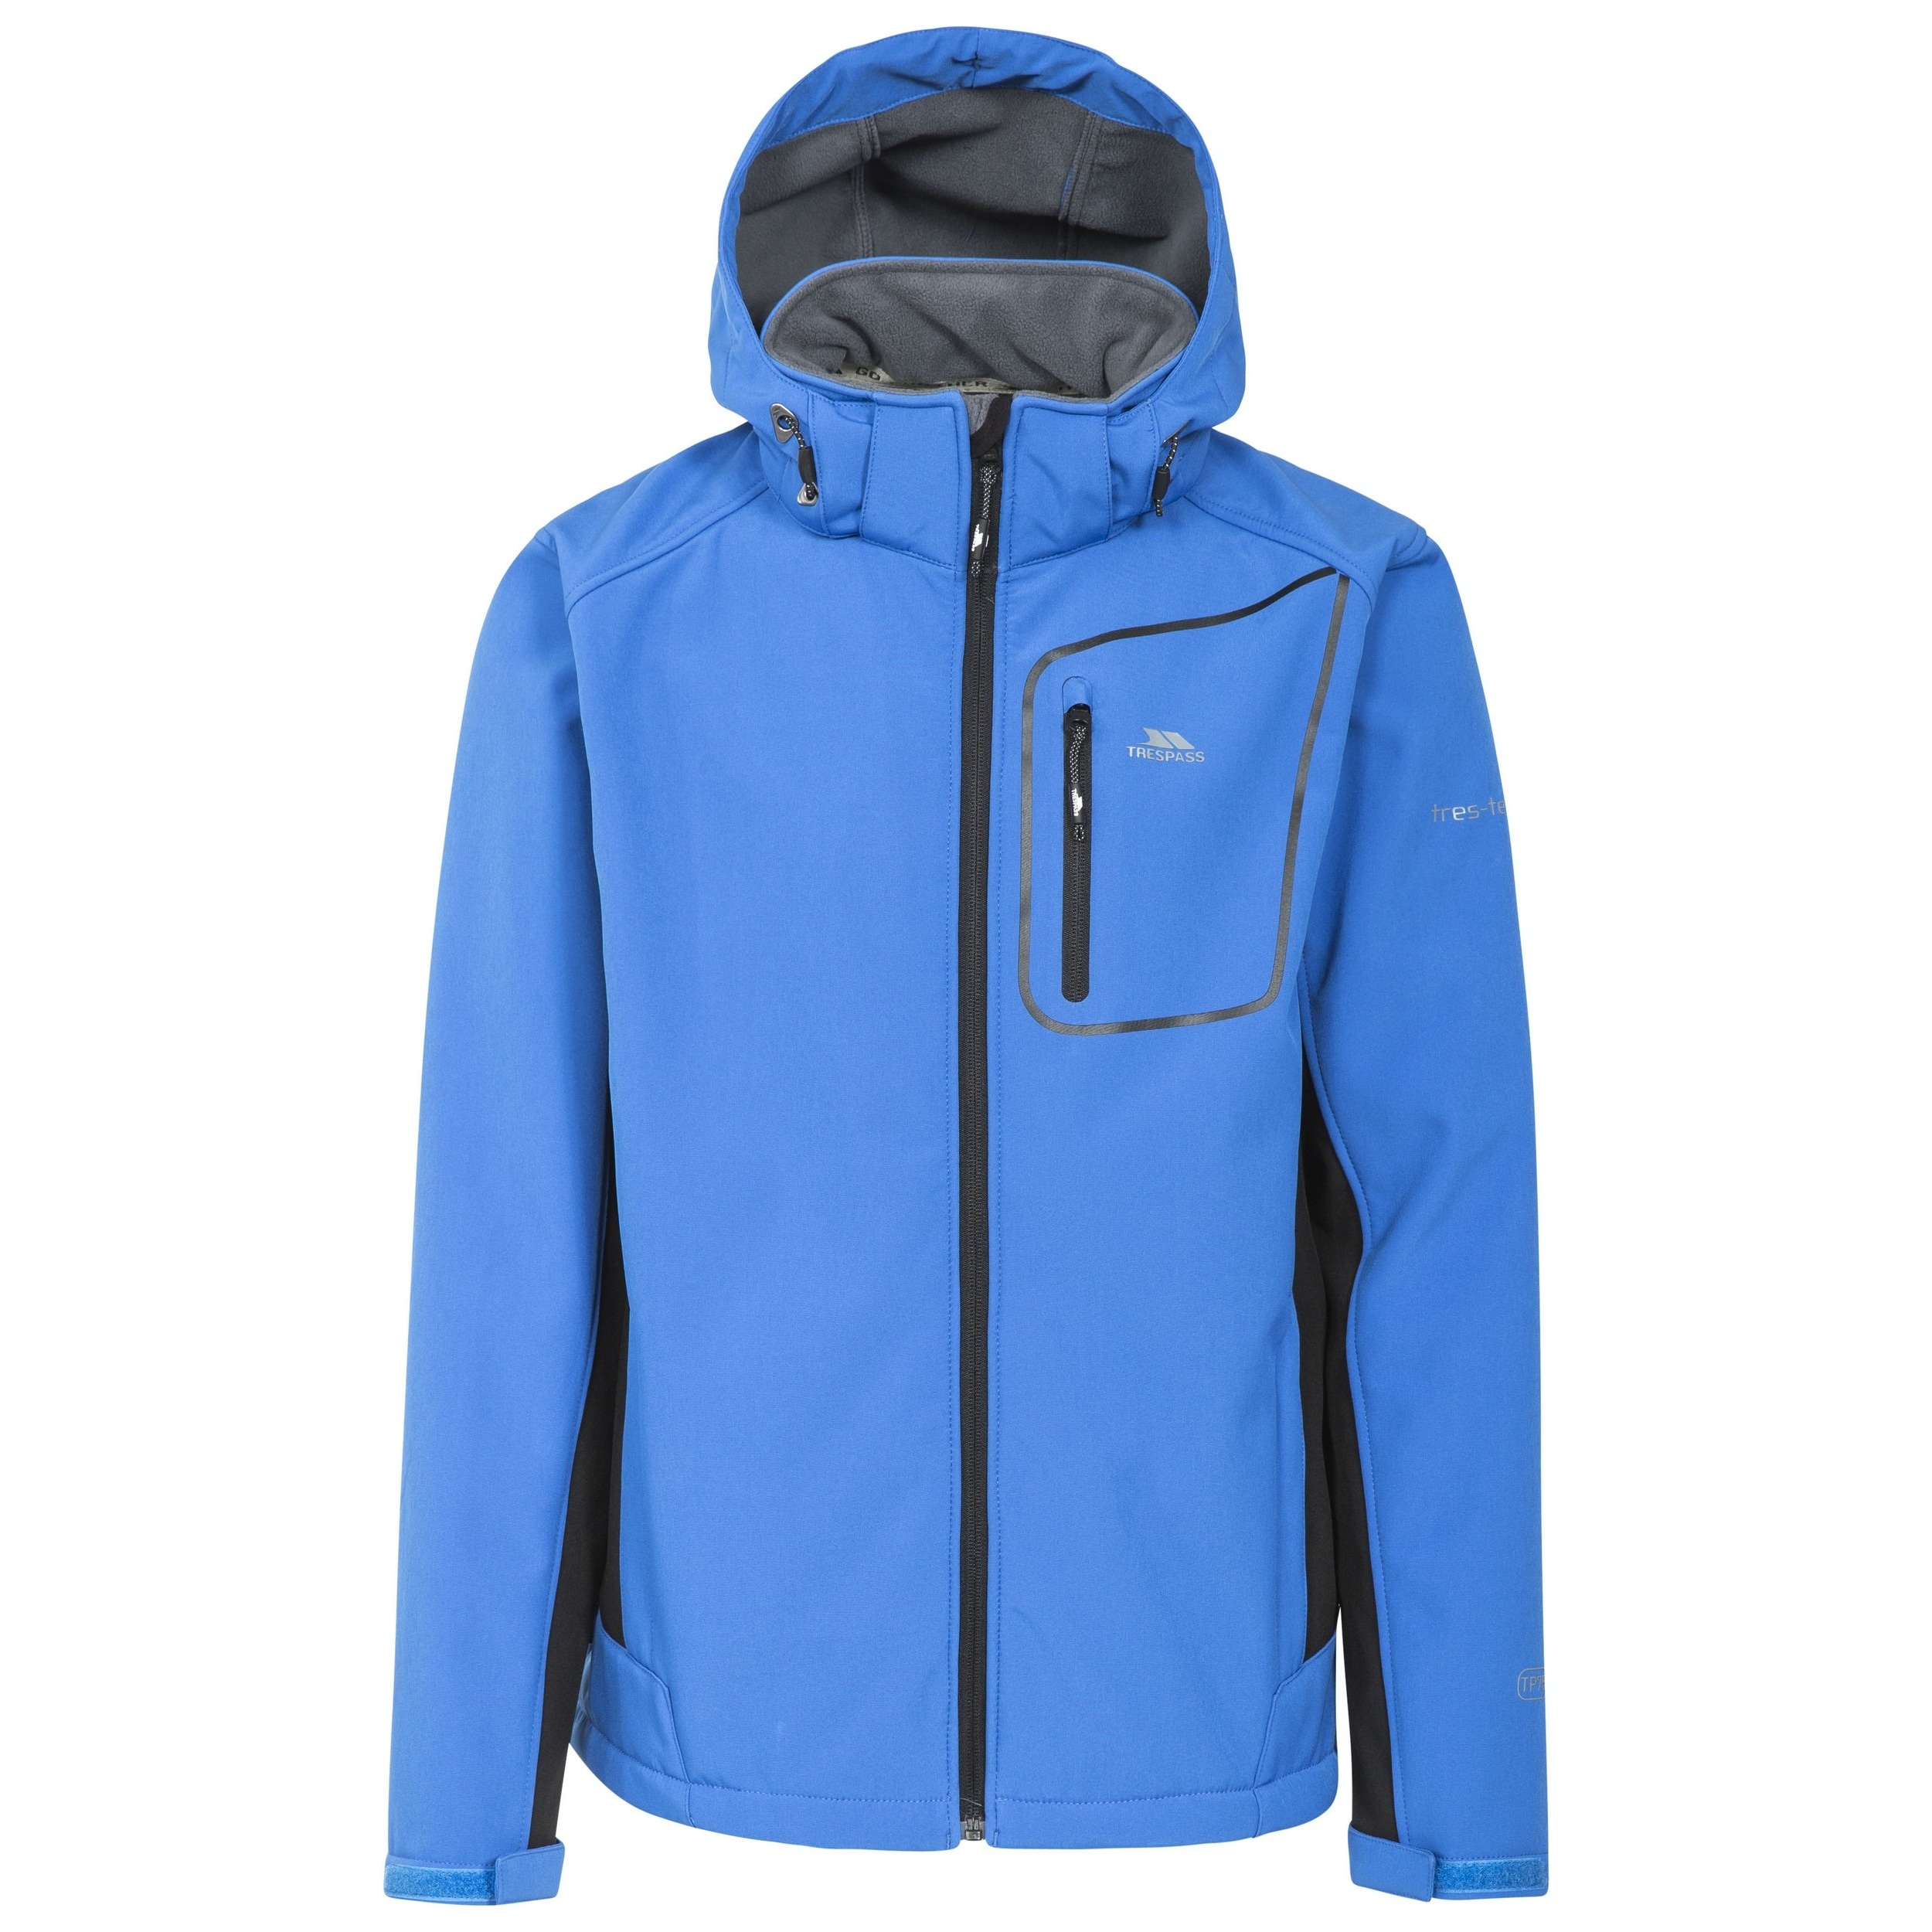 Trespass Softshelljacke | Sportbekleidung > Sportjacken > Softshelljacken | Blau | Polyester | Trespass